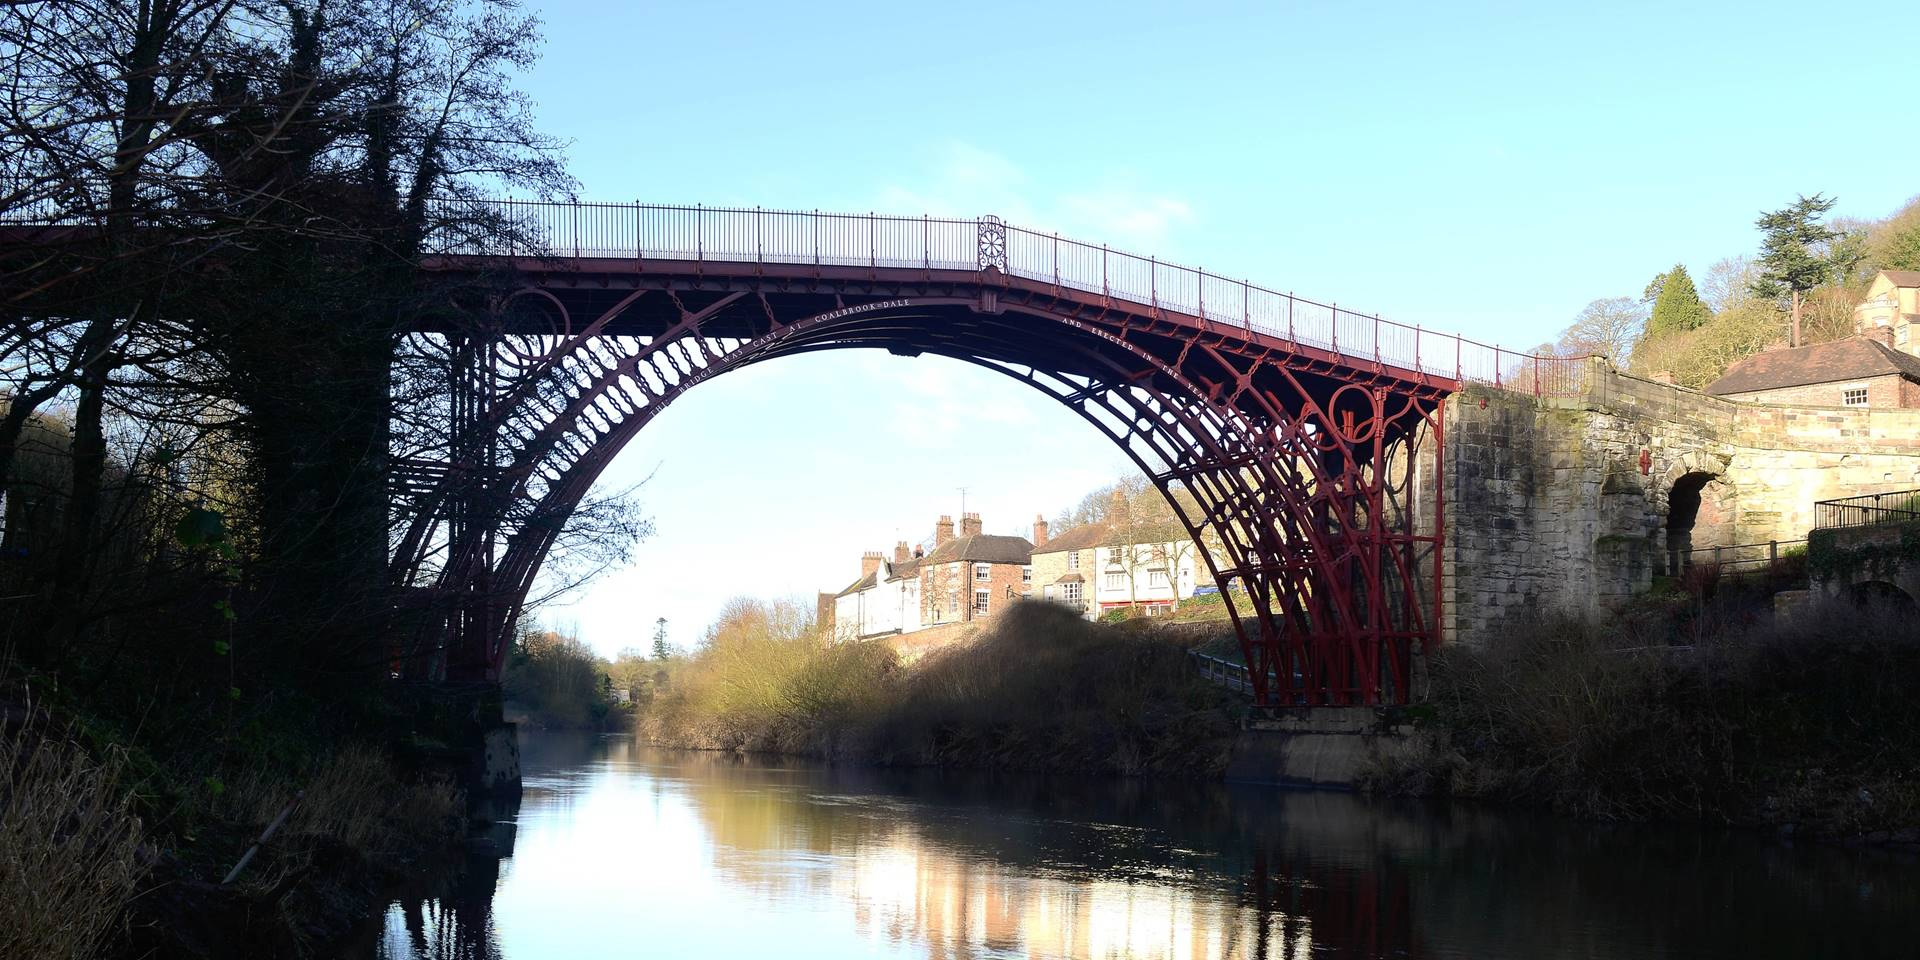 Win an annual family pass to The Iron Bridge Museums